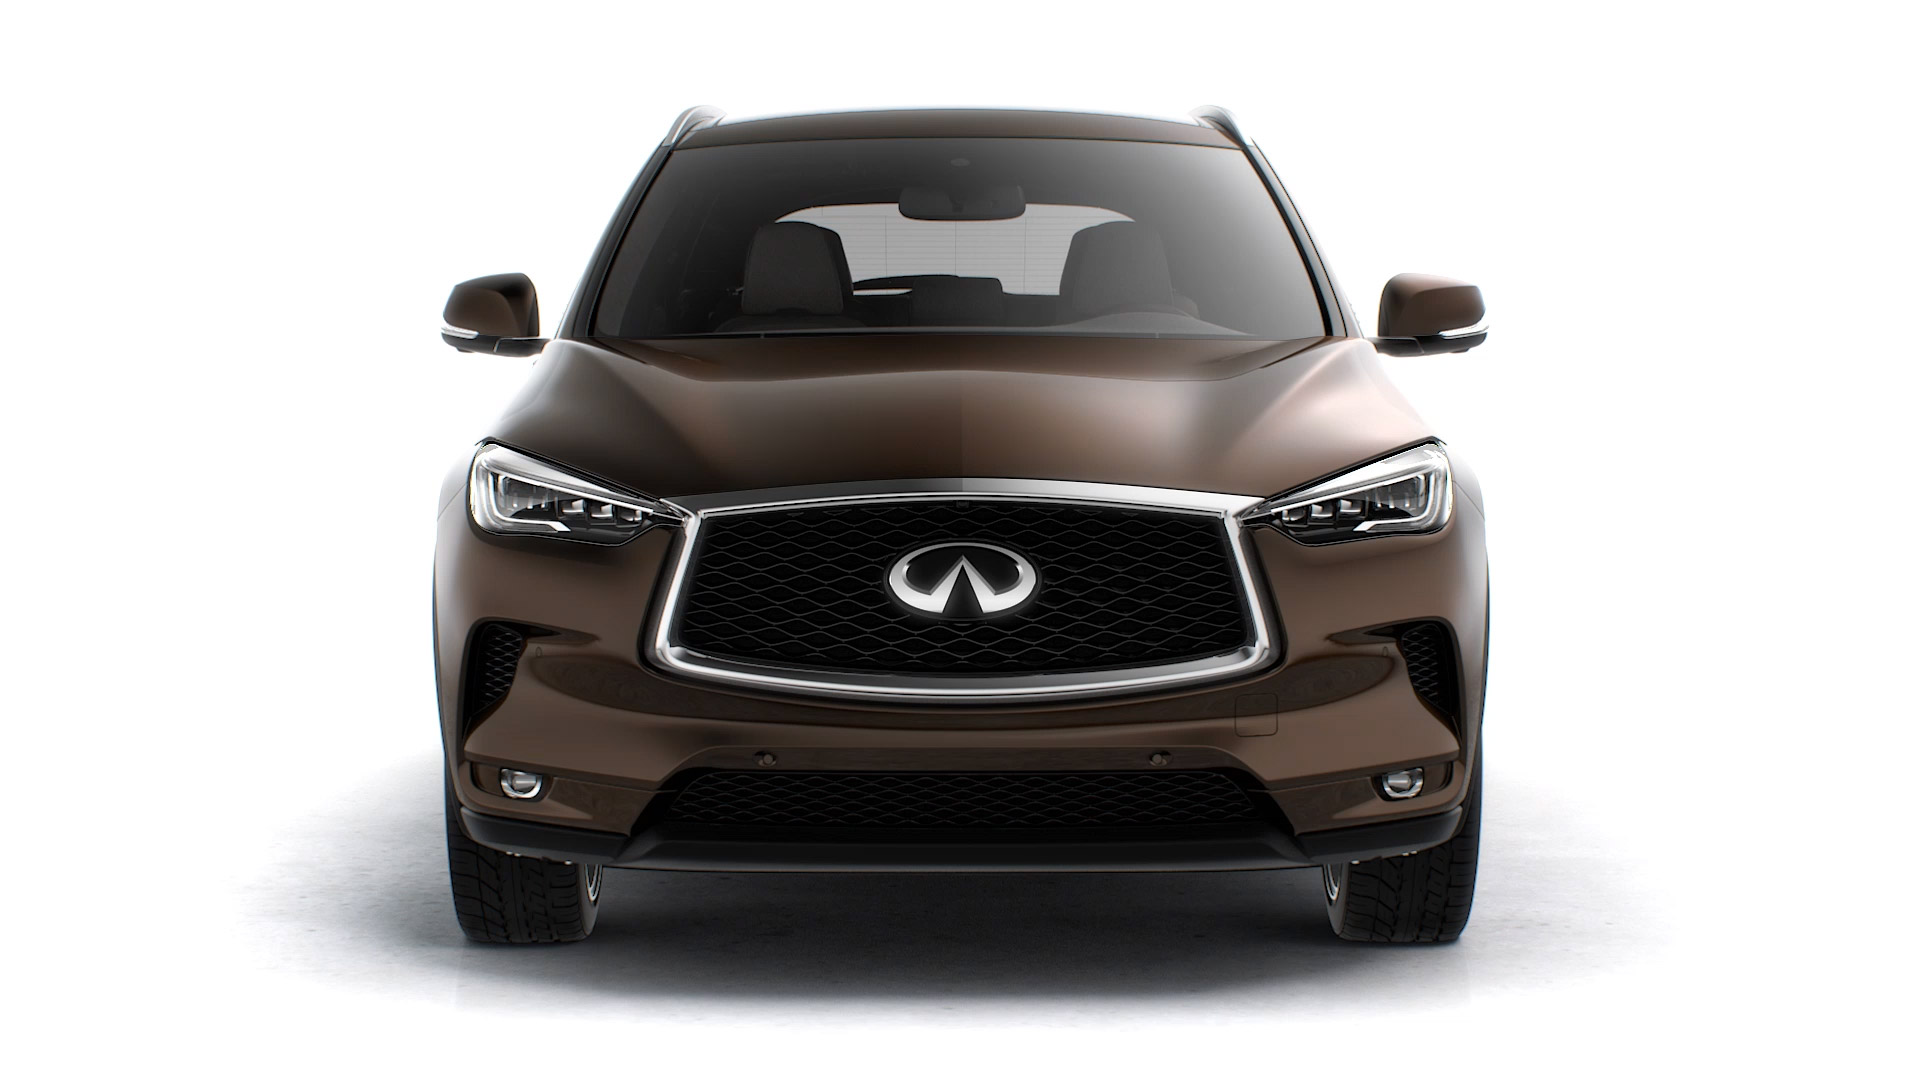 2019 INFINITI QX50 Luxury Crossover Exterior Design